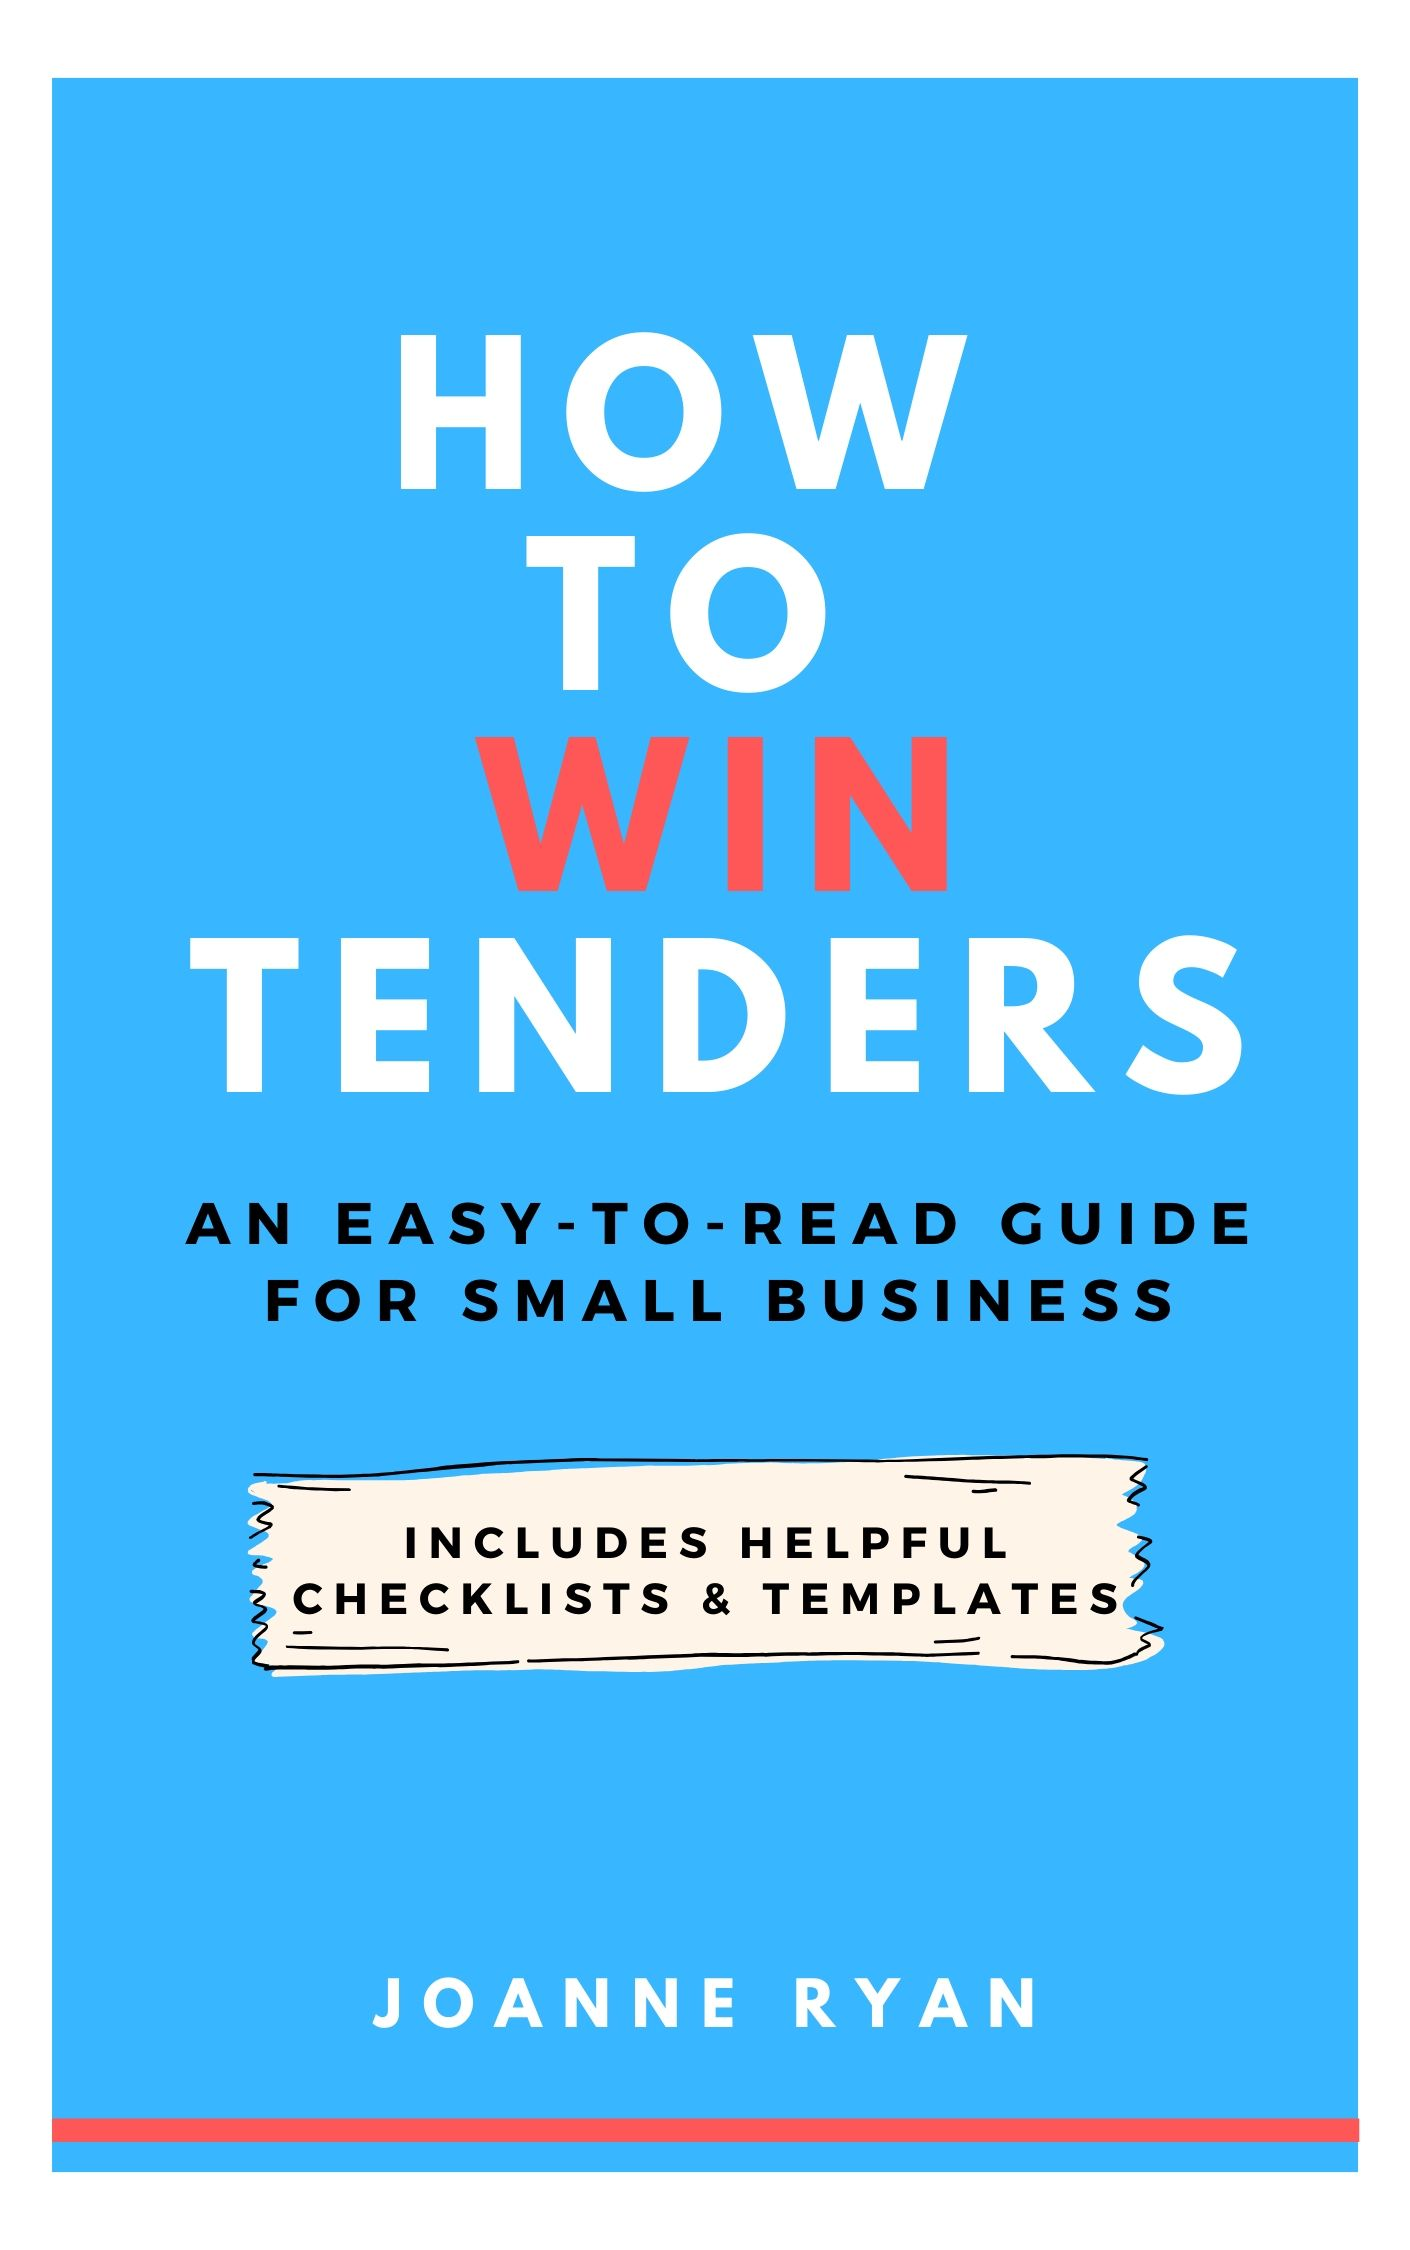 How to win tenders